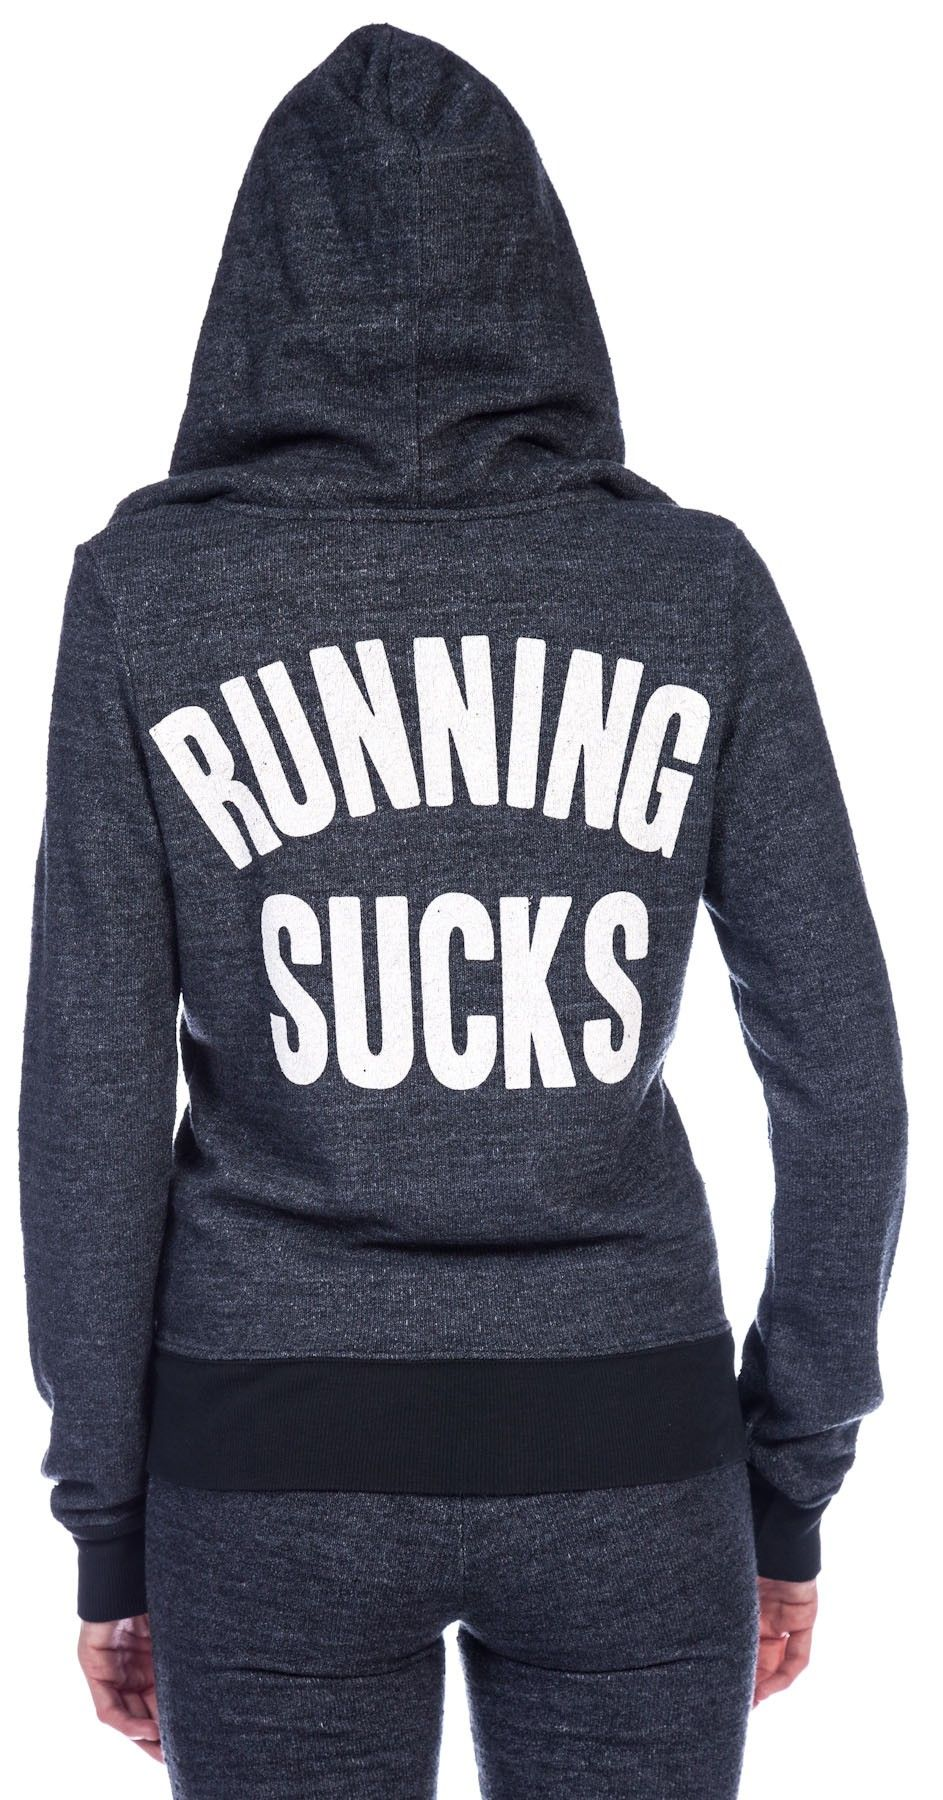 I'd exercise in this. | Fashion, Clothes, Style